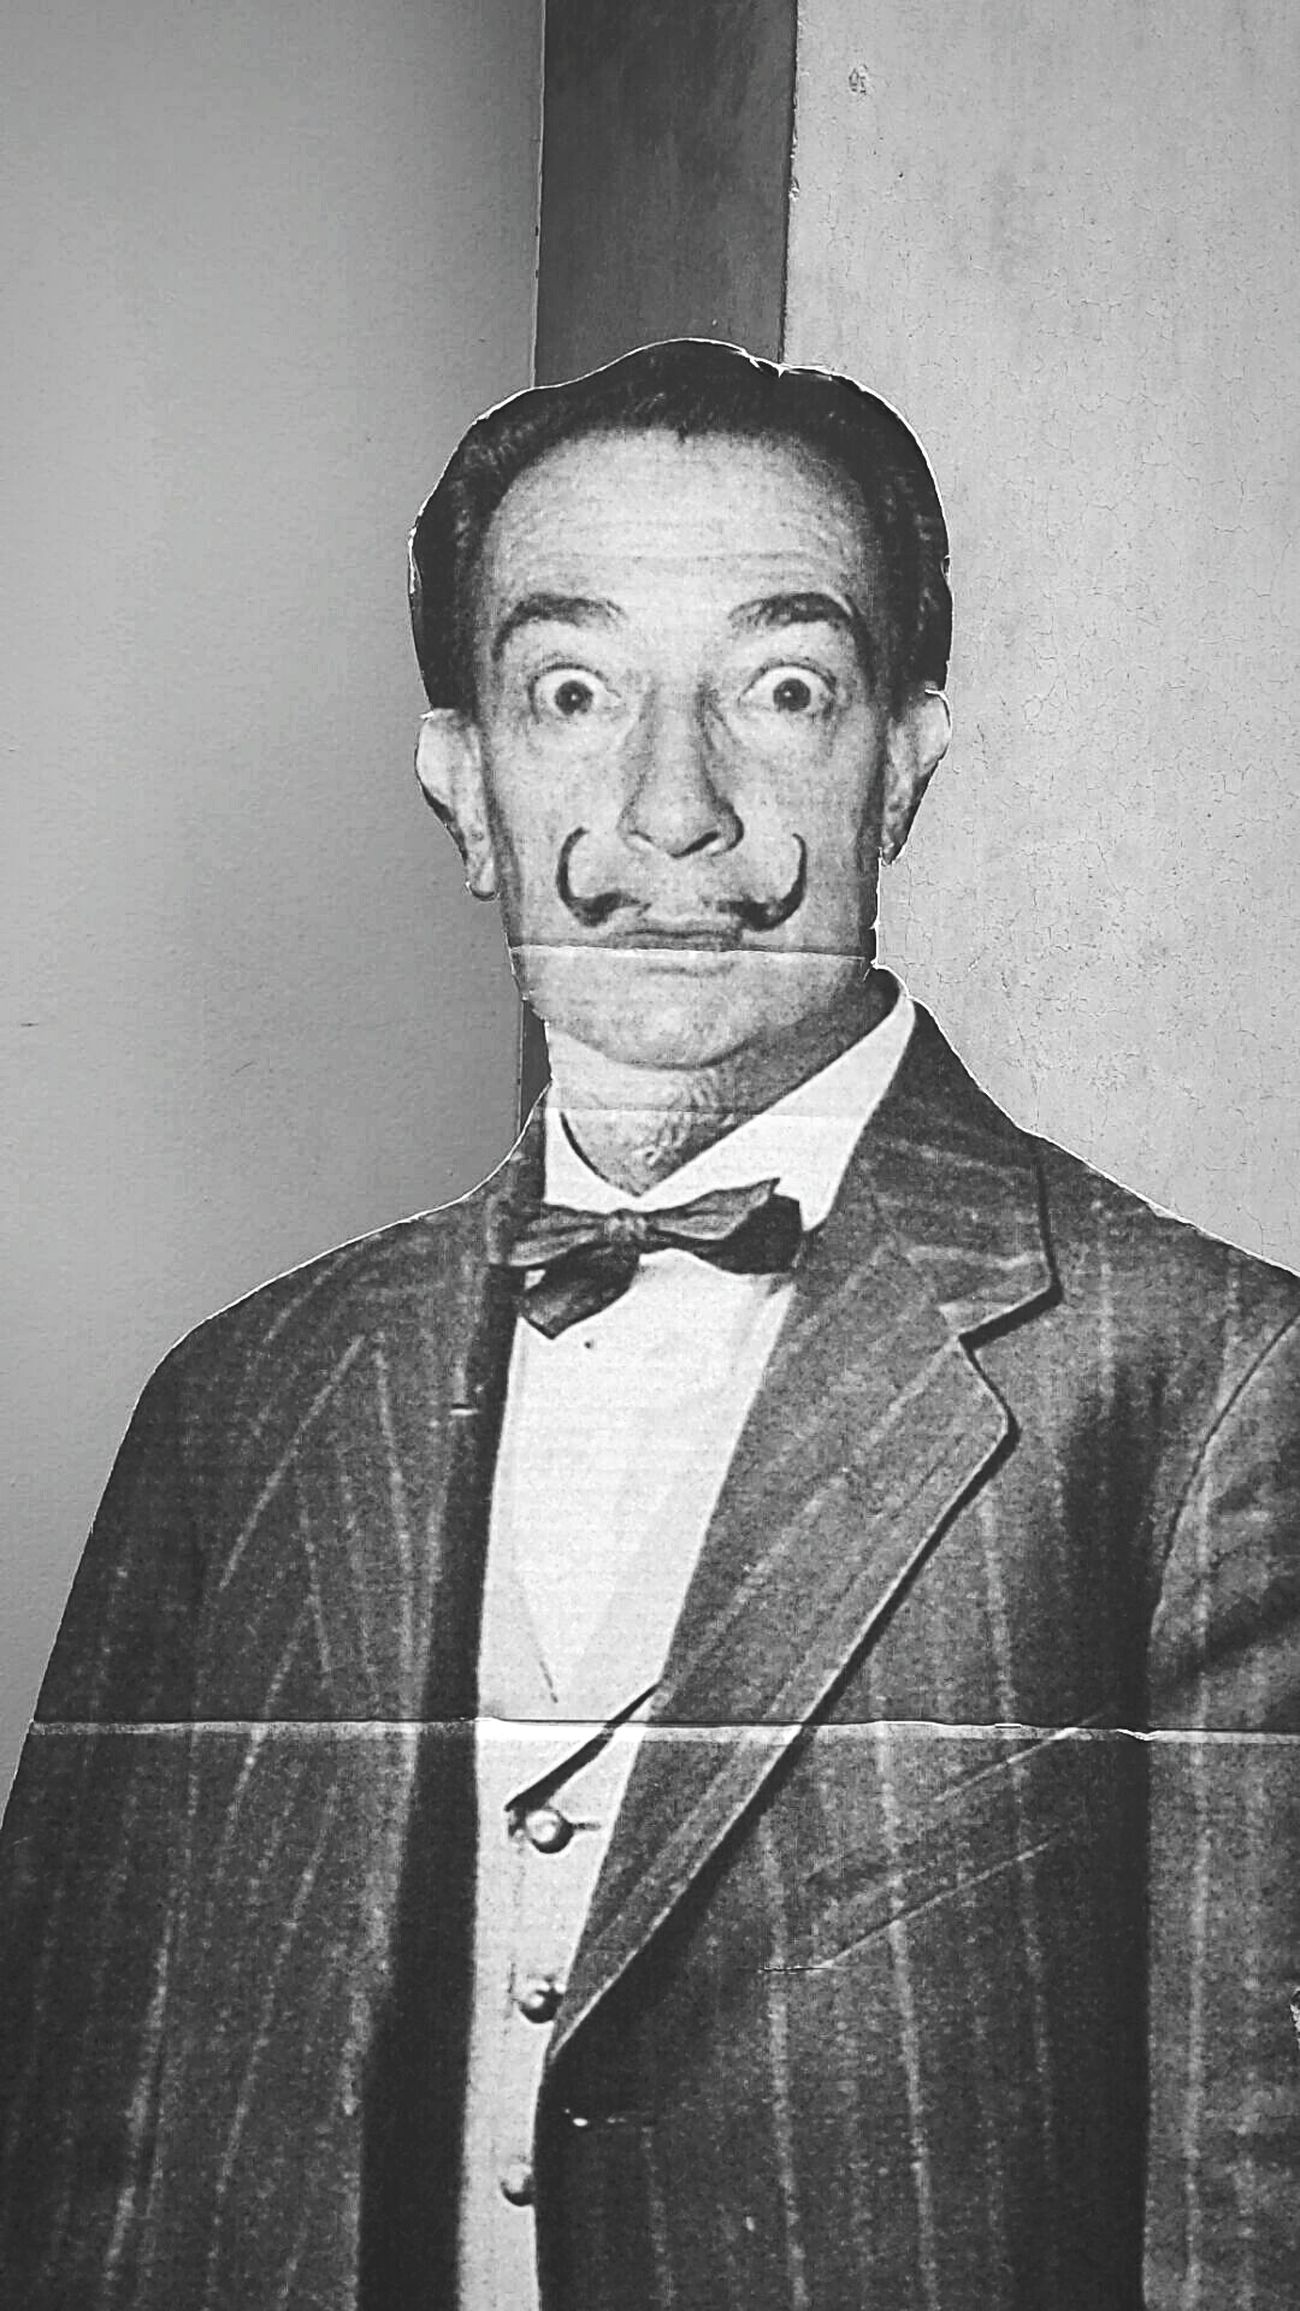 Dalí himself 😂 Art Gallery Taking Photos Check This Out Learning Exploring The Minimals (less Edit Juxt Photography) Salvadordali Artist Salvador Dali Art